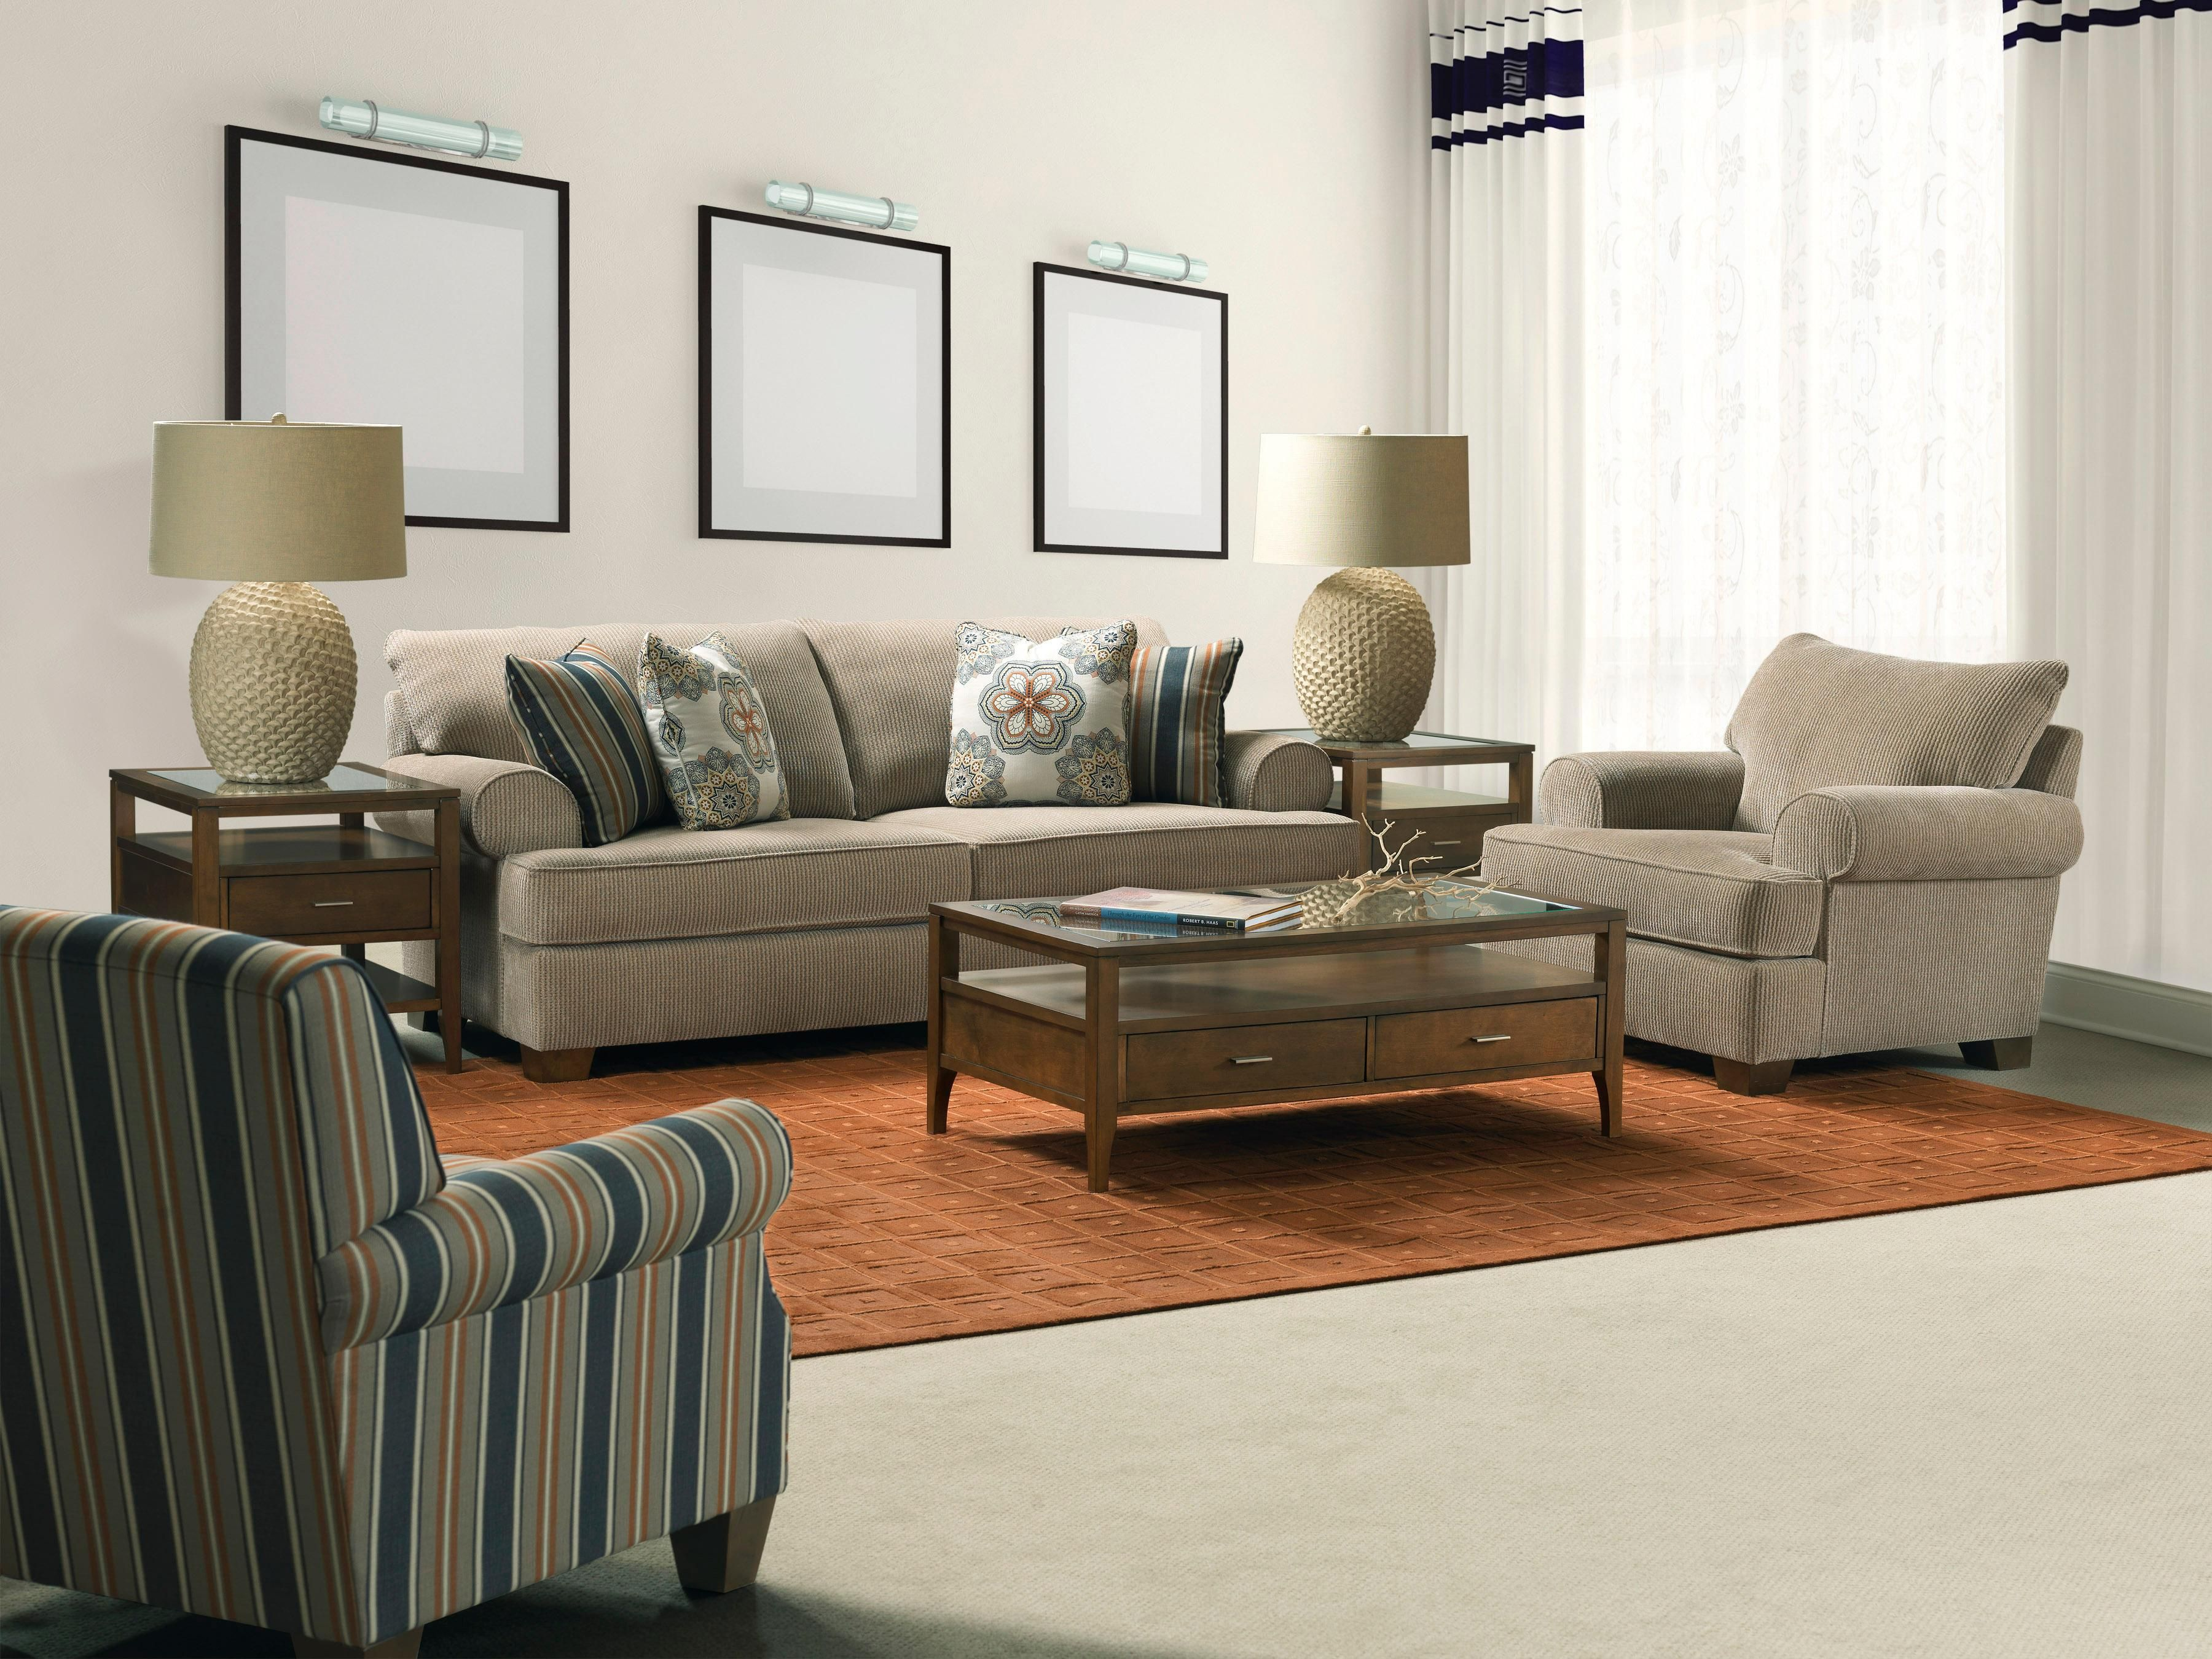 Choose your style Custom order your Broyhill furniture from Turk